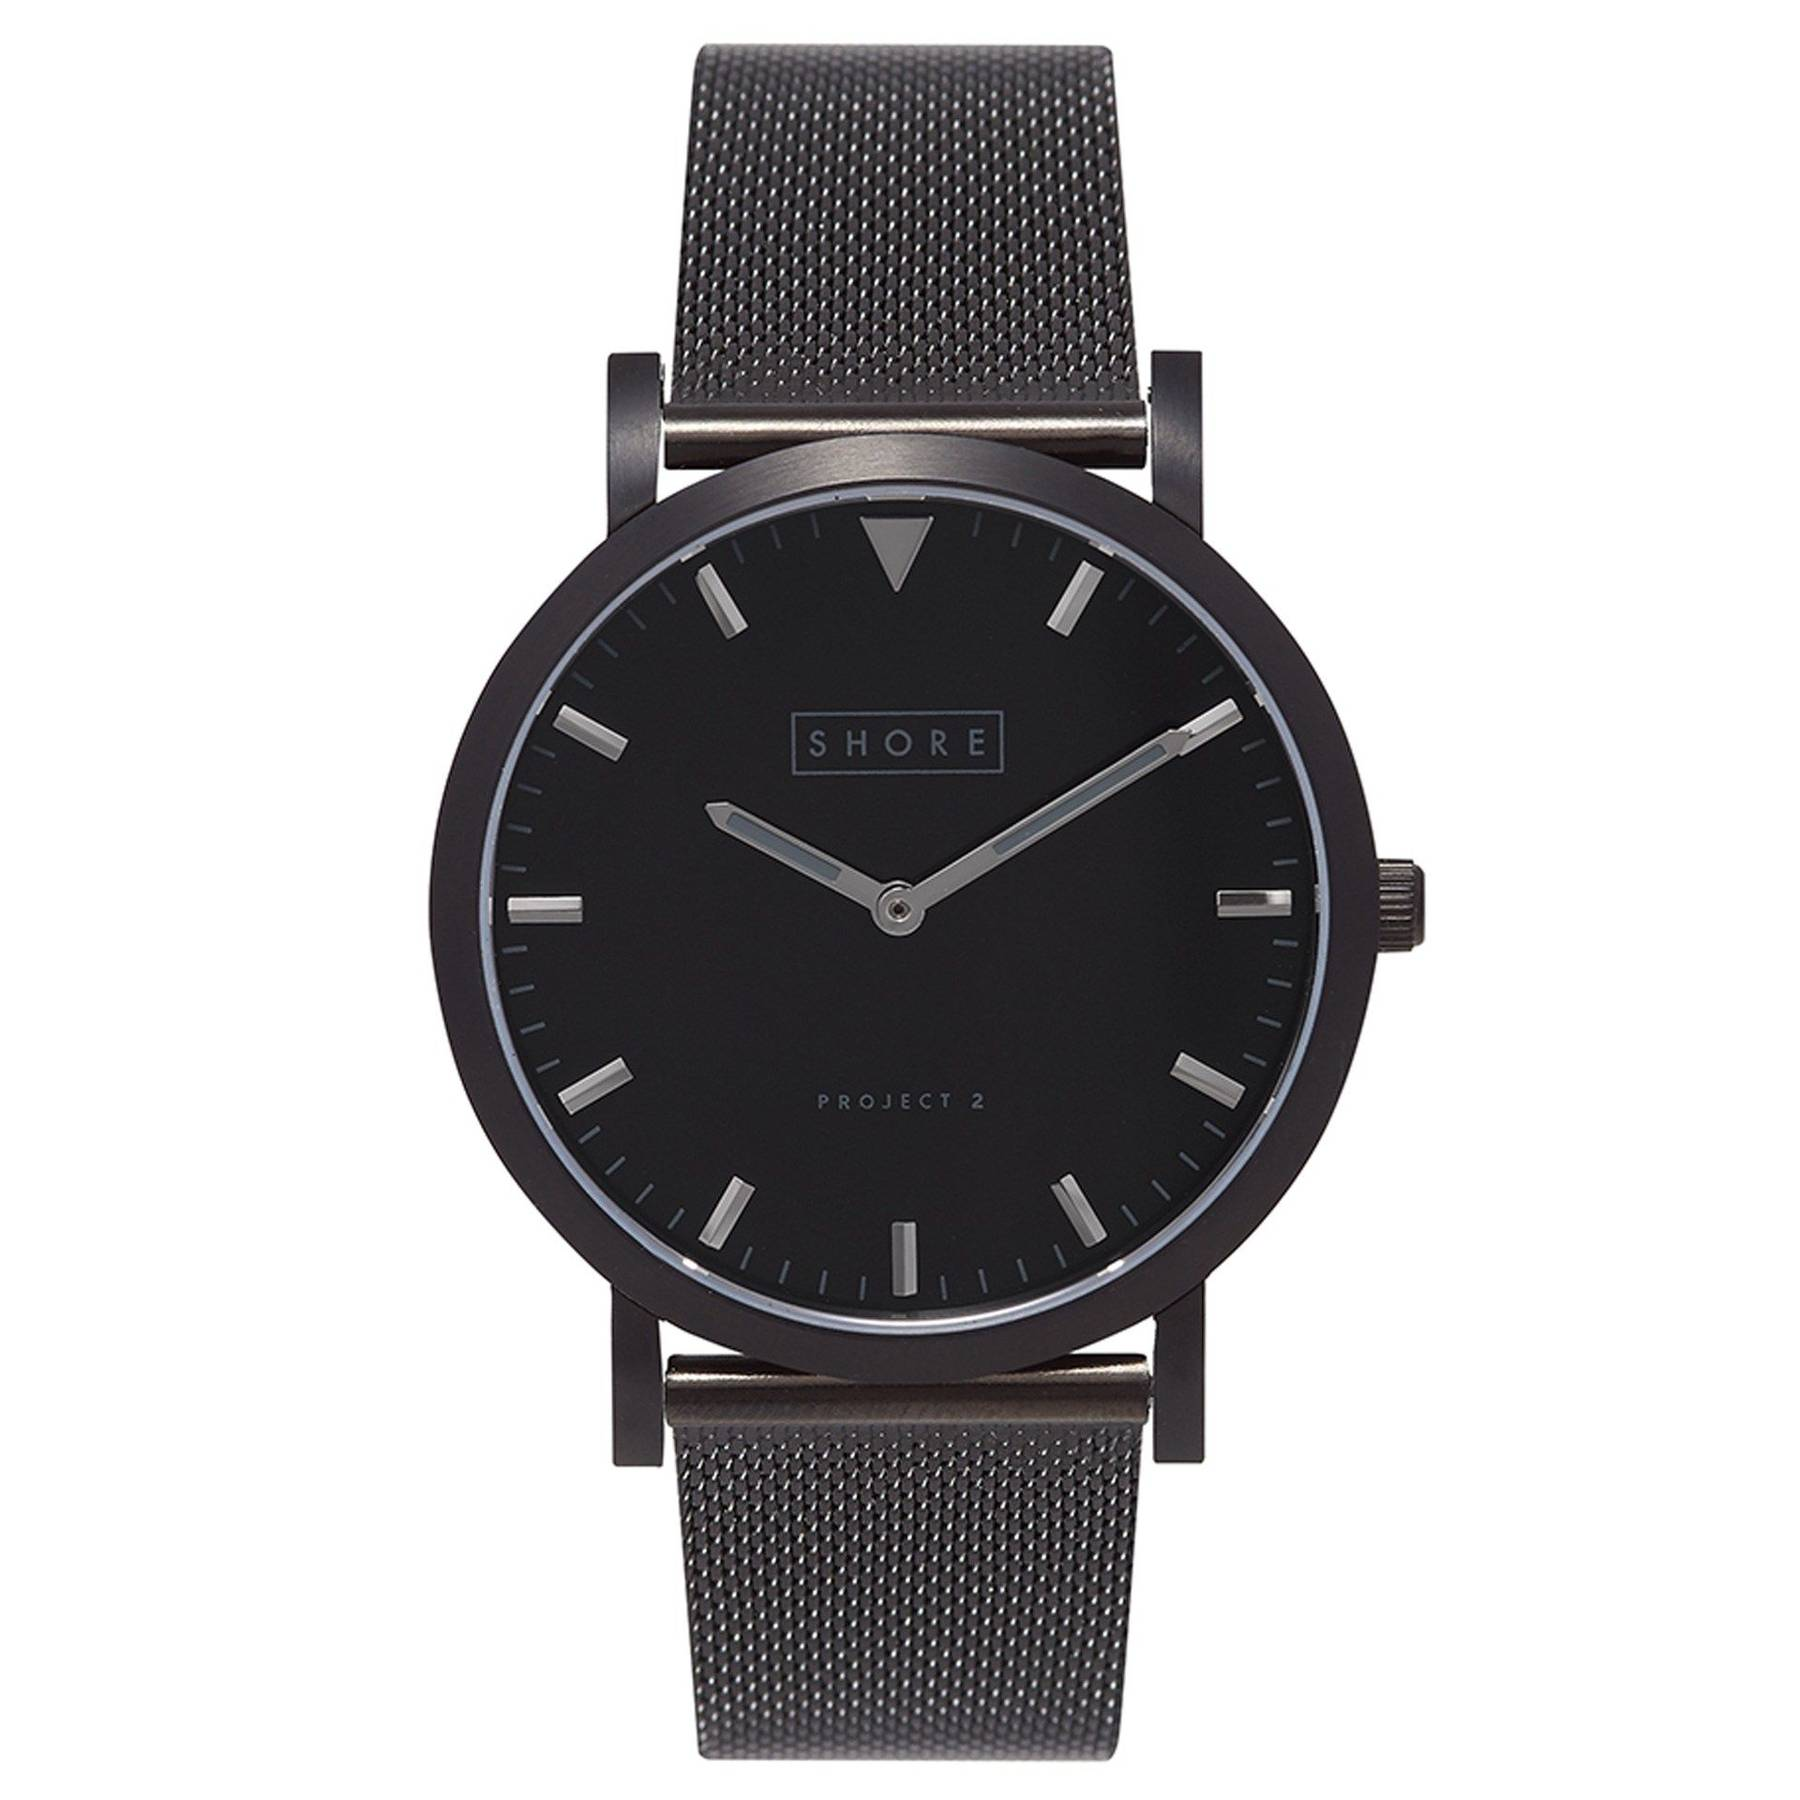 trans the style s mens under men watches manly best of iqmove